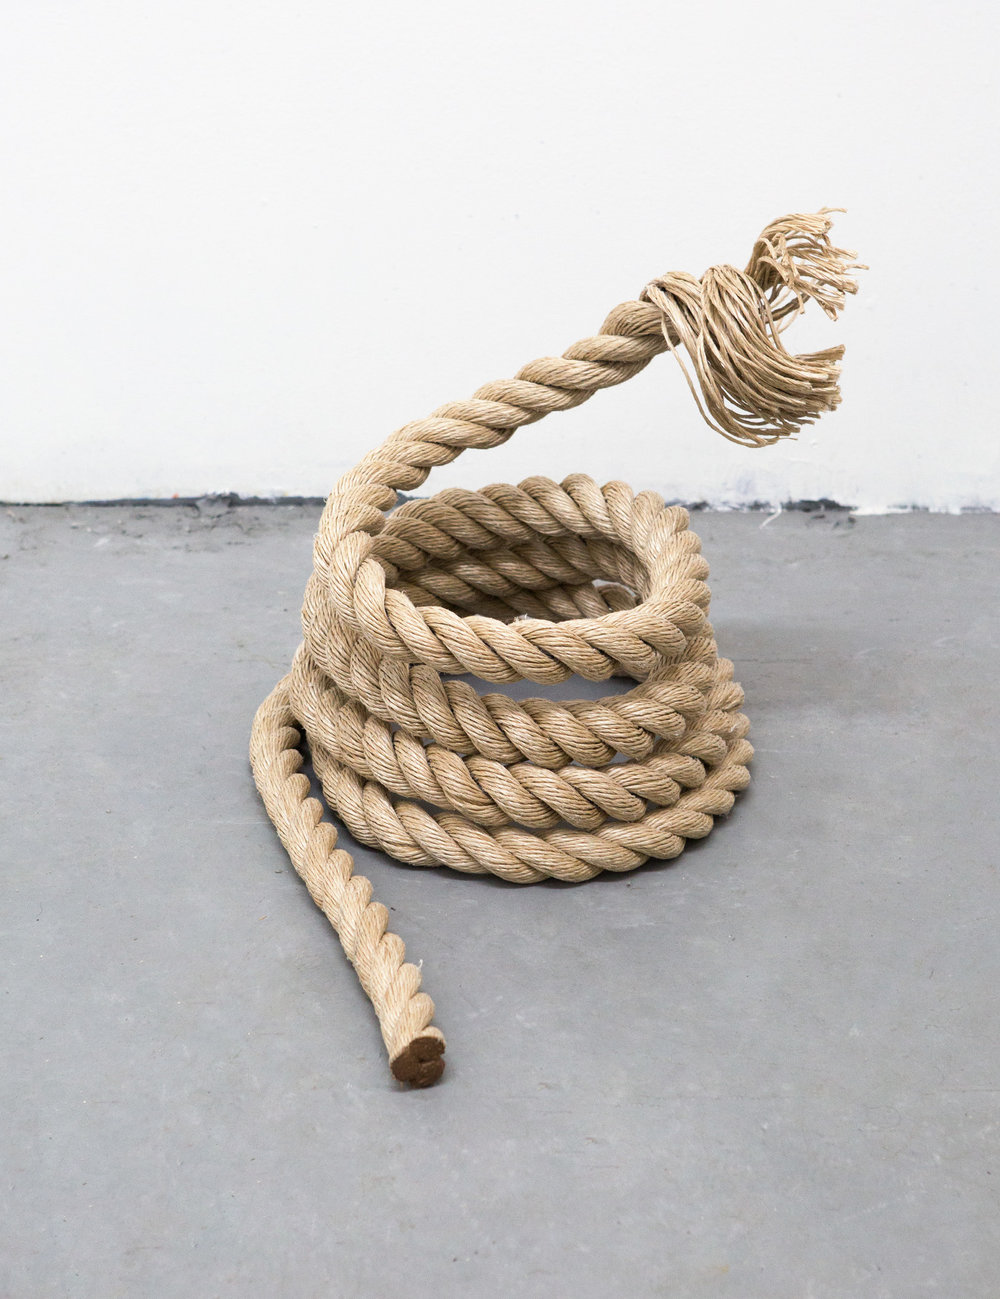 Untitled (4), 2016   Rope, Aluminum